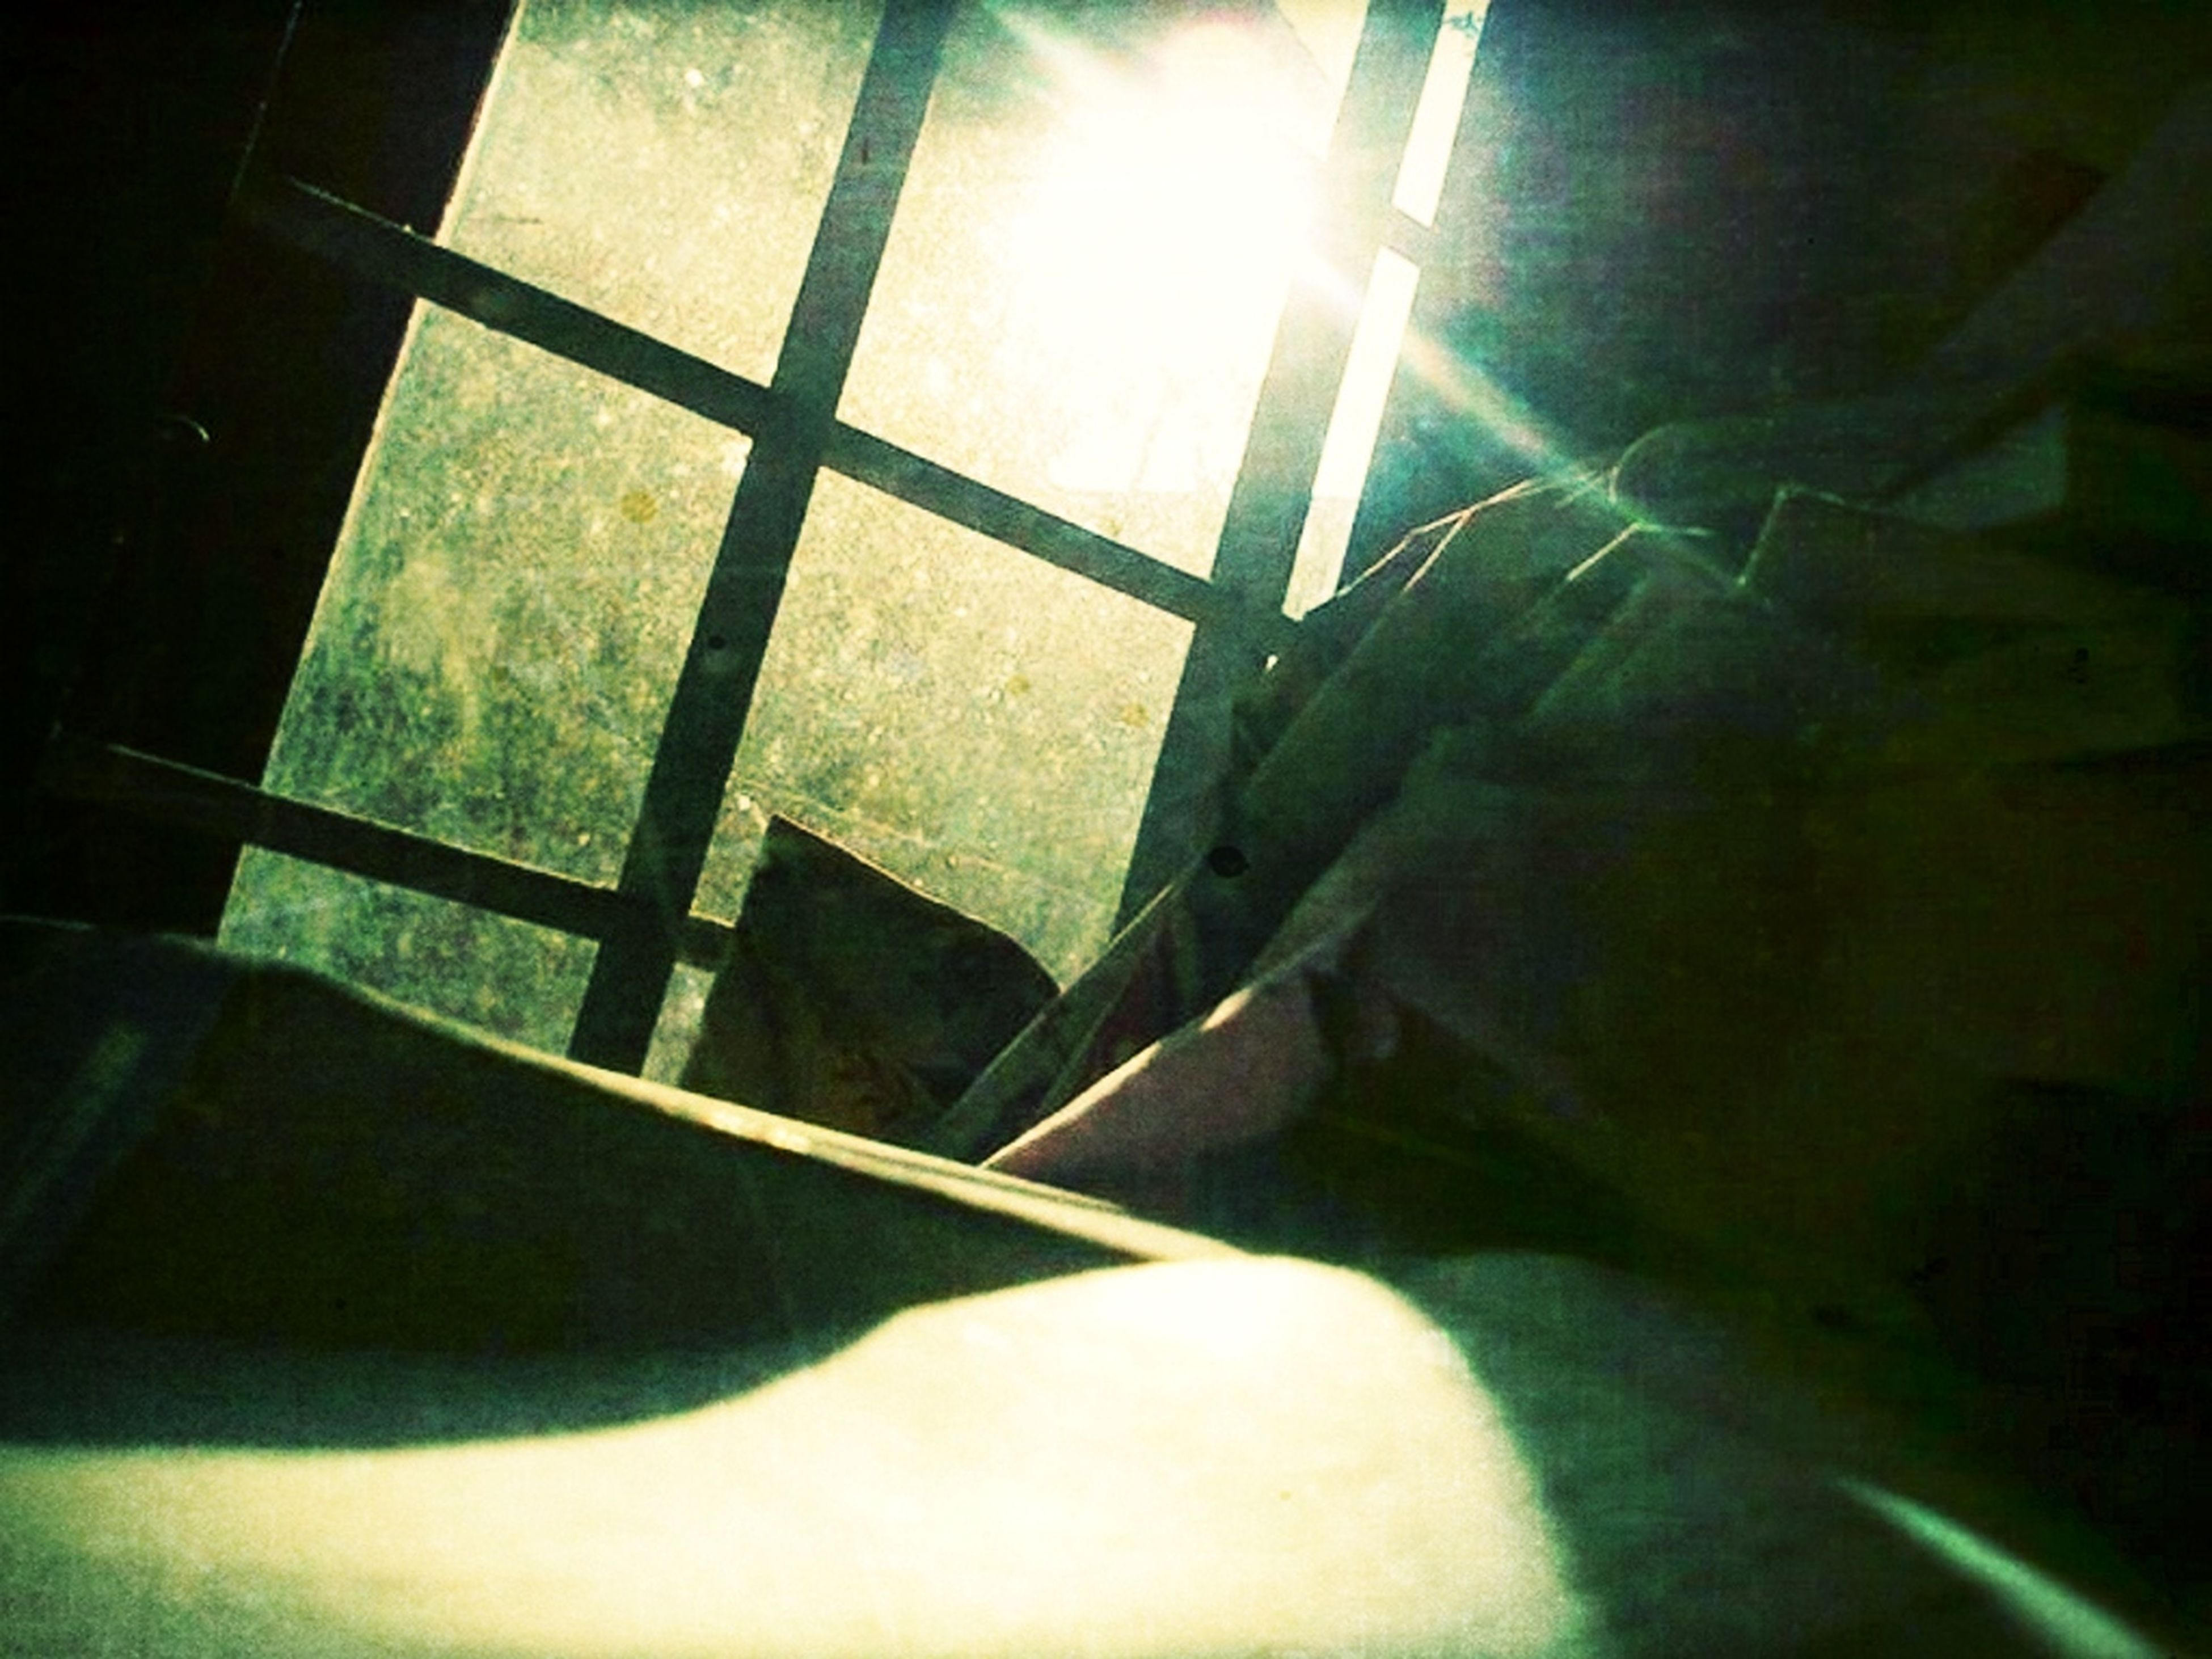 sunlight, sunbeam, sun, indoors, built structure, lens flare, architecture, shadow, sunny, window, no people, bright, day, glass - material, empty, reflection, building exterior, absence, wall - building feature, low angle view